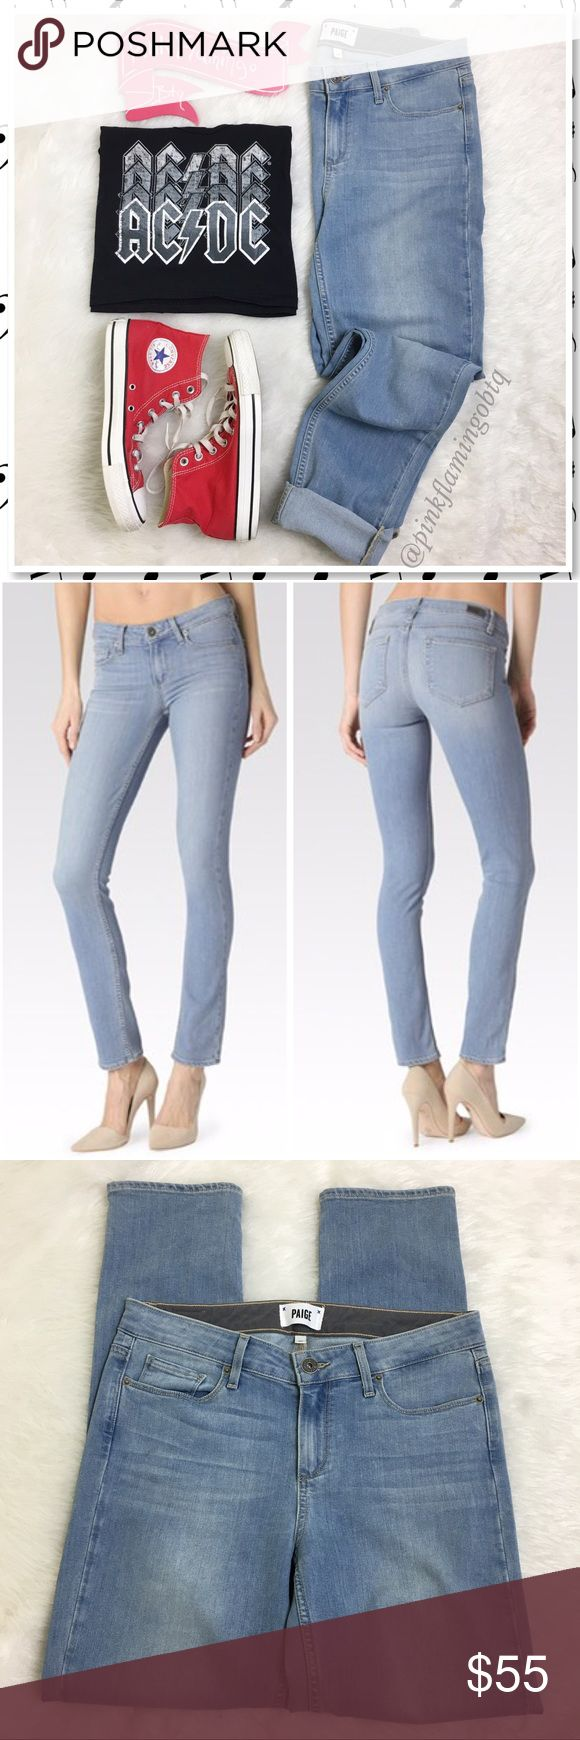 Paige Skyline Ankle Peg Skinny in Addy Wash EUC Paige Jeans. The Skyline Ankle Peg is designed with Pages classic, skyline Skinny Fit throughout the leg and a slightly shorter inseam that grazes the Ankle bone. Super soft fabric holds you in and doesn't bag out during the day, taking you from office hours to after hours in a seamless transition. Only worn once for a few hours, sadly I ordered the wrong size. Paige Jeans Jeans Ankle & Cropped